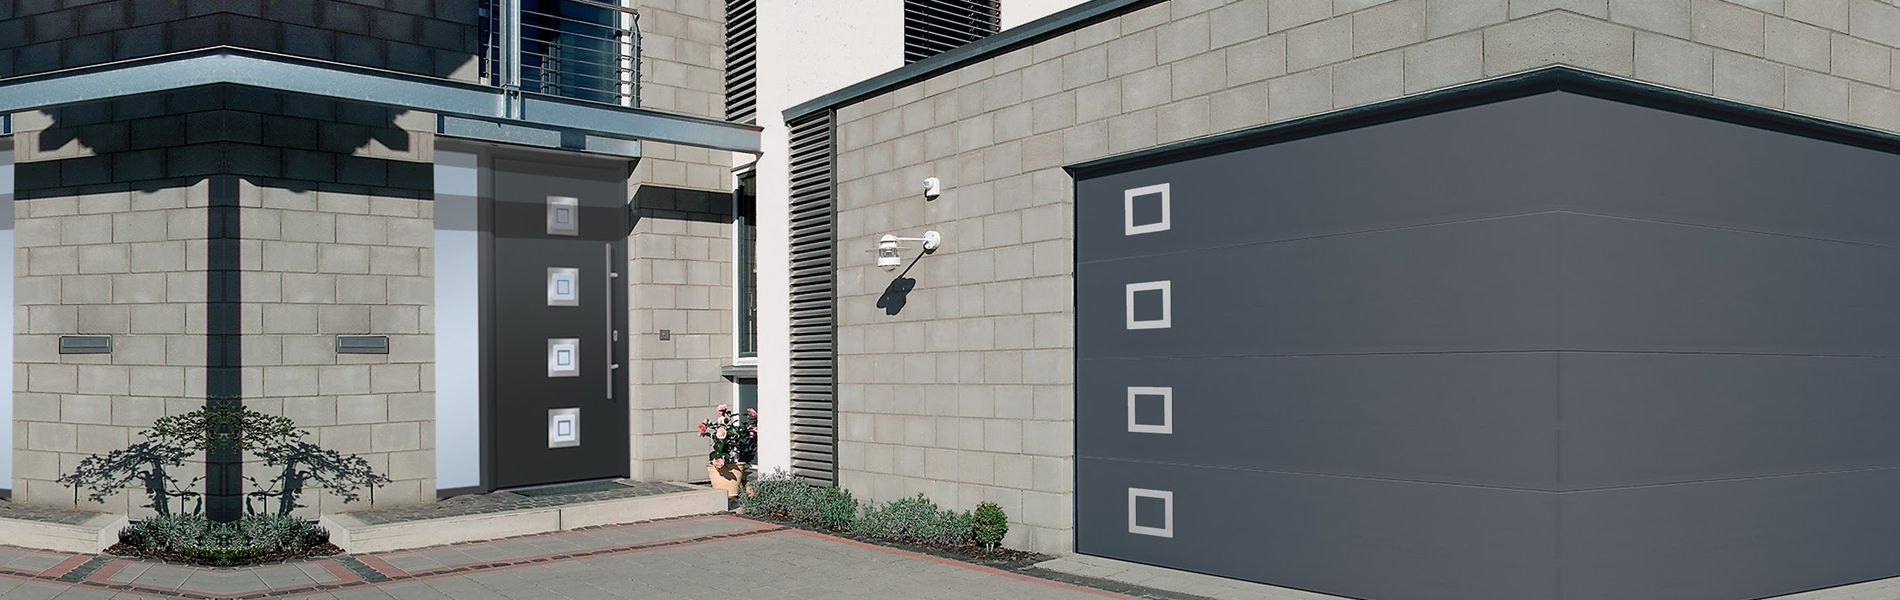 Interstate Garage Doors Lake Oswego, OR 503-664-3054